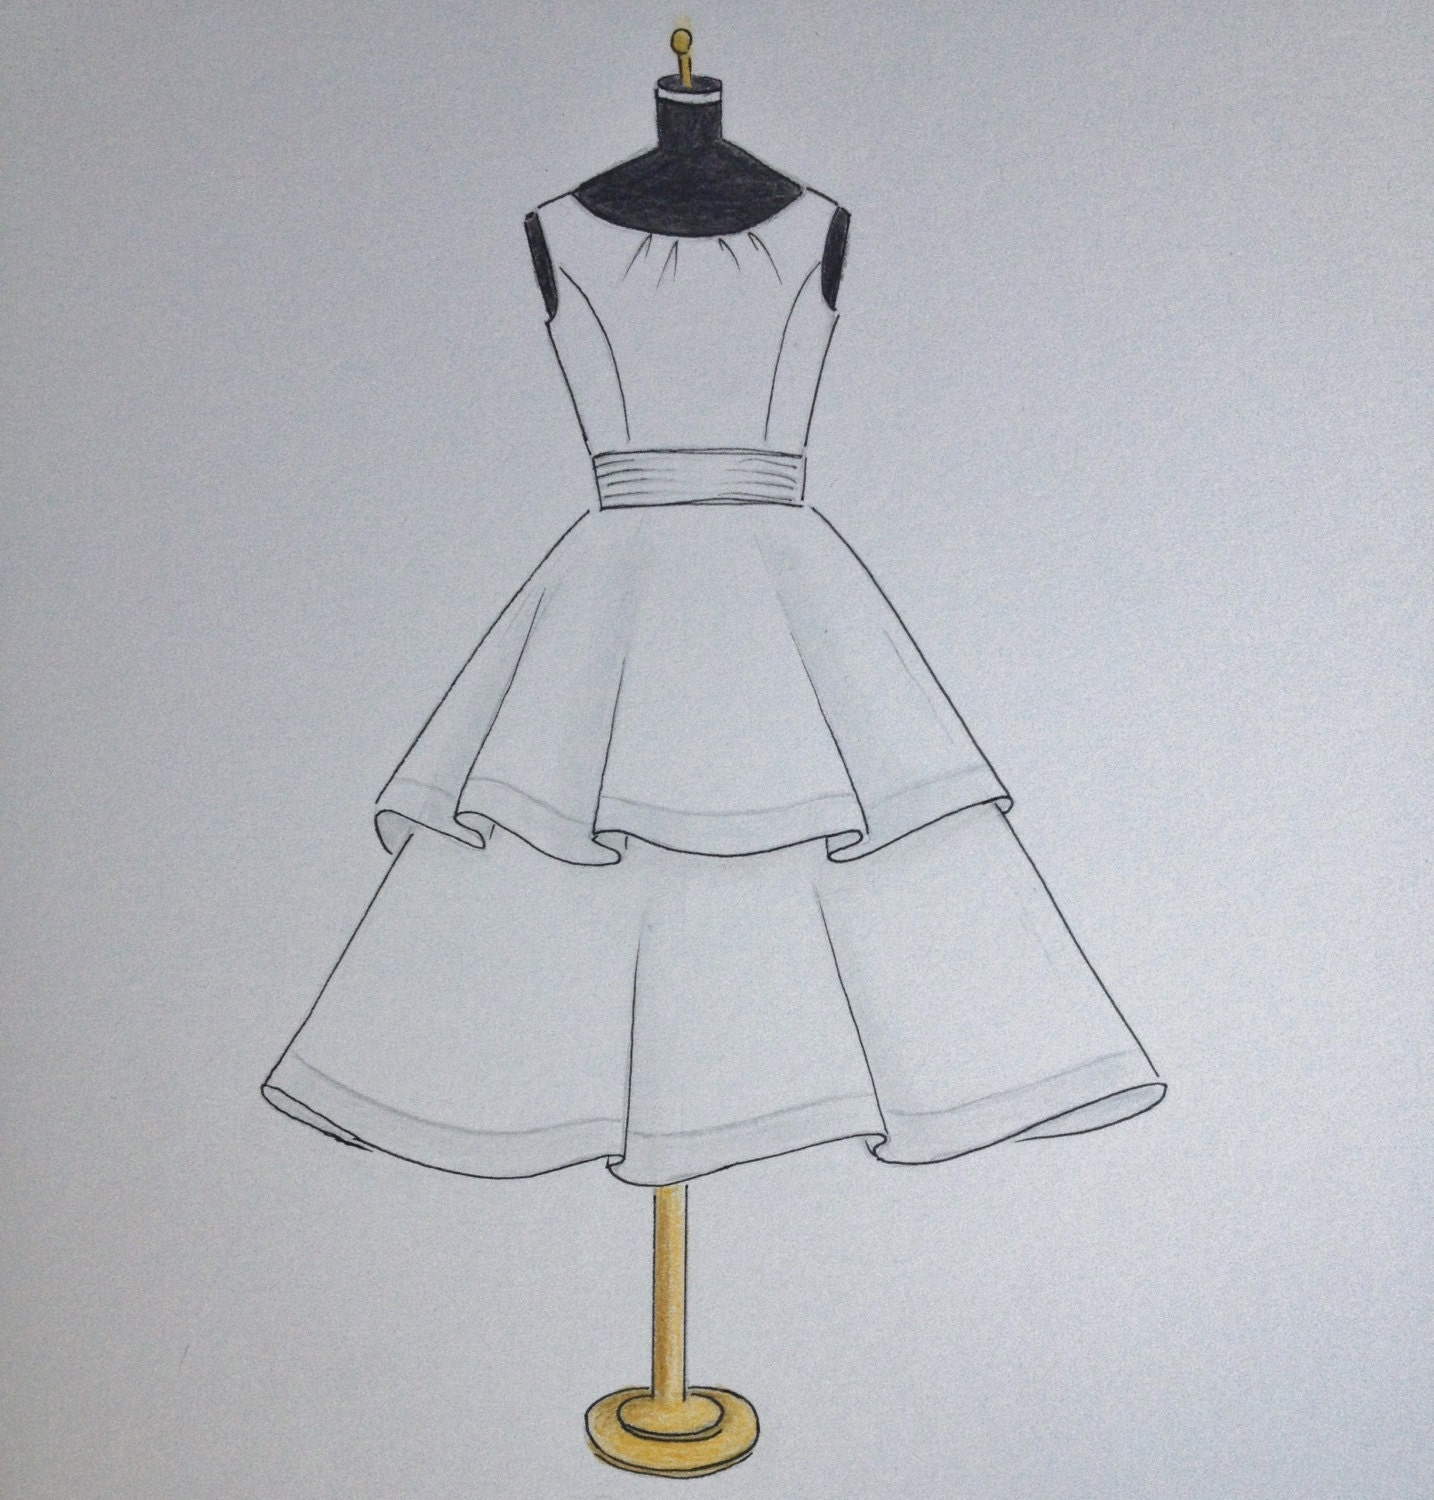 Dresses drawing pictures